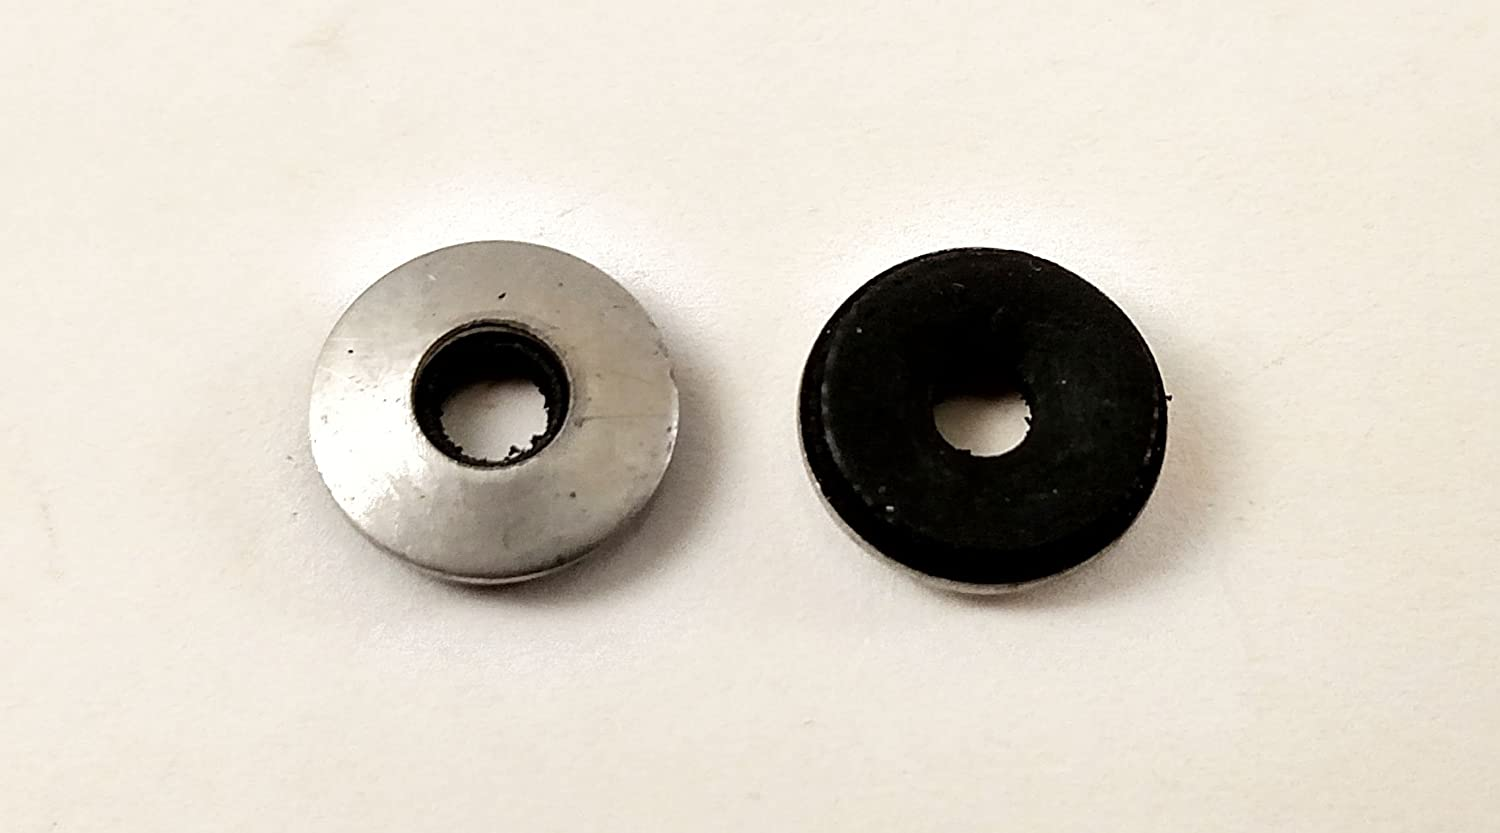 #14 Neoprene EPDM Bonded Sealing Washers Stainless Steel 18-8, Neo Bond, 100 Pieces (#14 Neobond Washer 18-8)